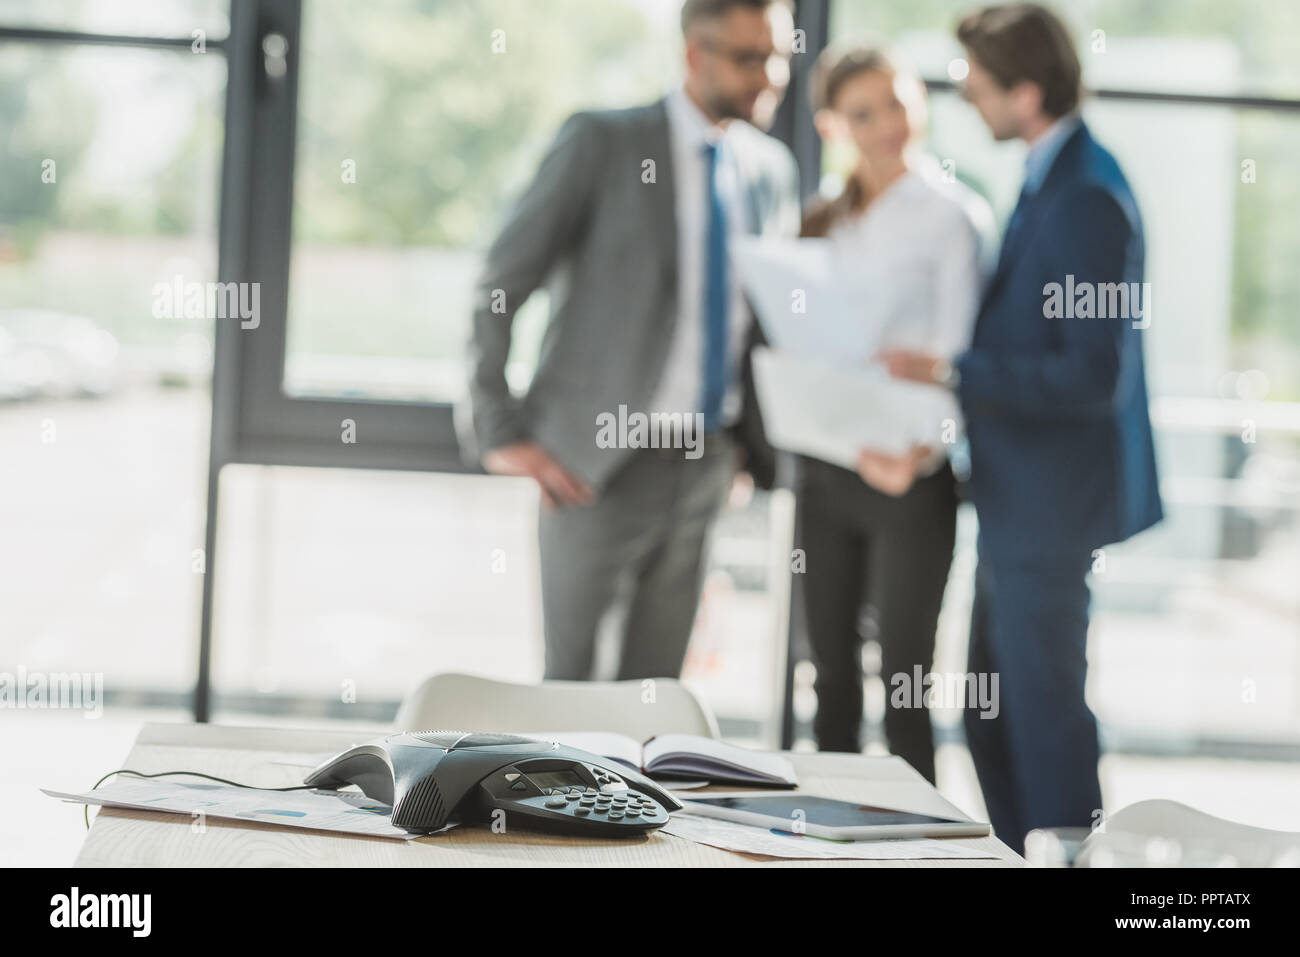 close-up shot of conference phone with blurred business people on background at office - Stock Image